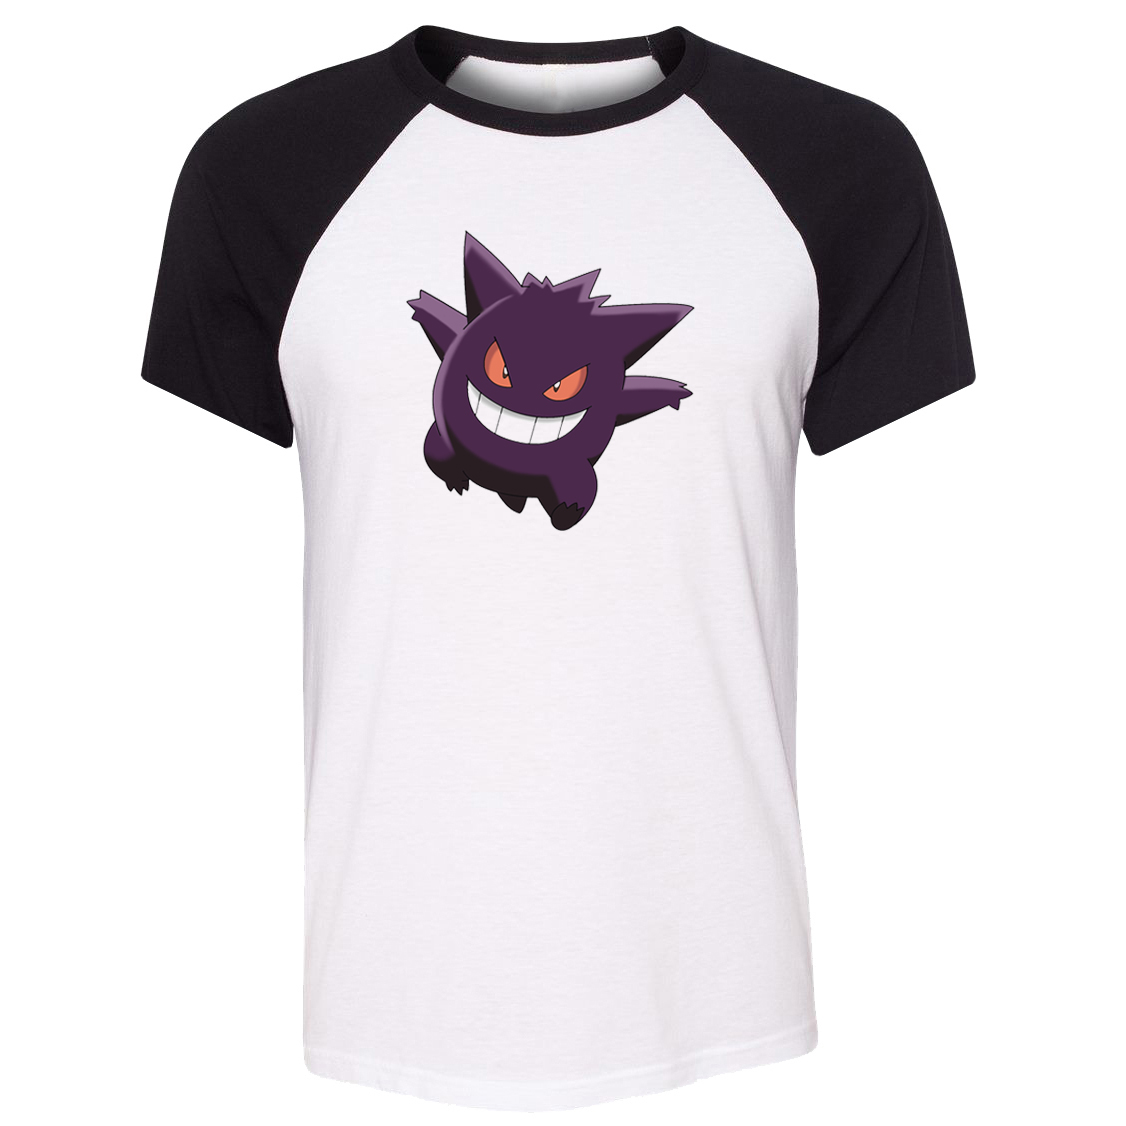 iDzn Unisex T-shirt Poison Ghost Type Pokemon National Pokedex 094 Gengar Pattern Raglan Short Sleeve Men T shirt print Tee Tops image